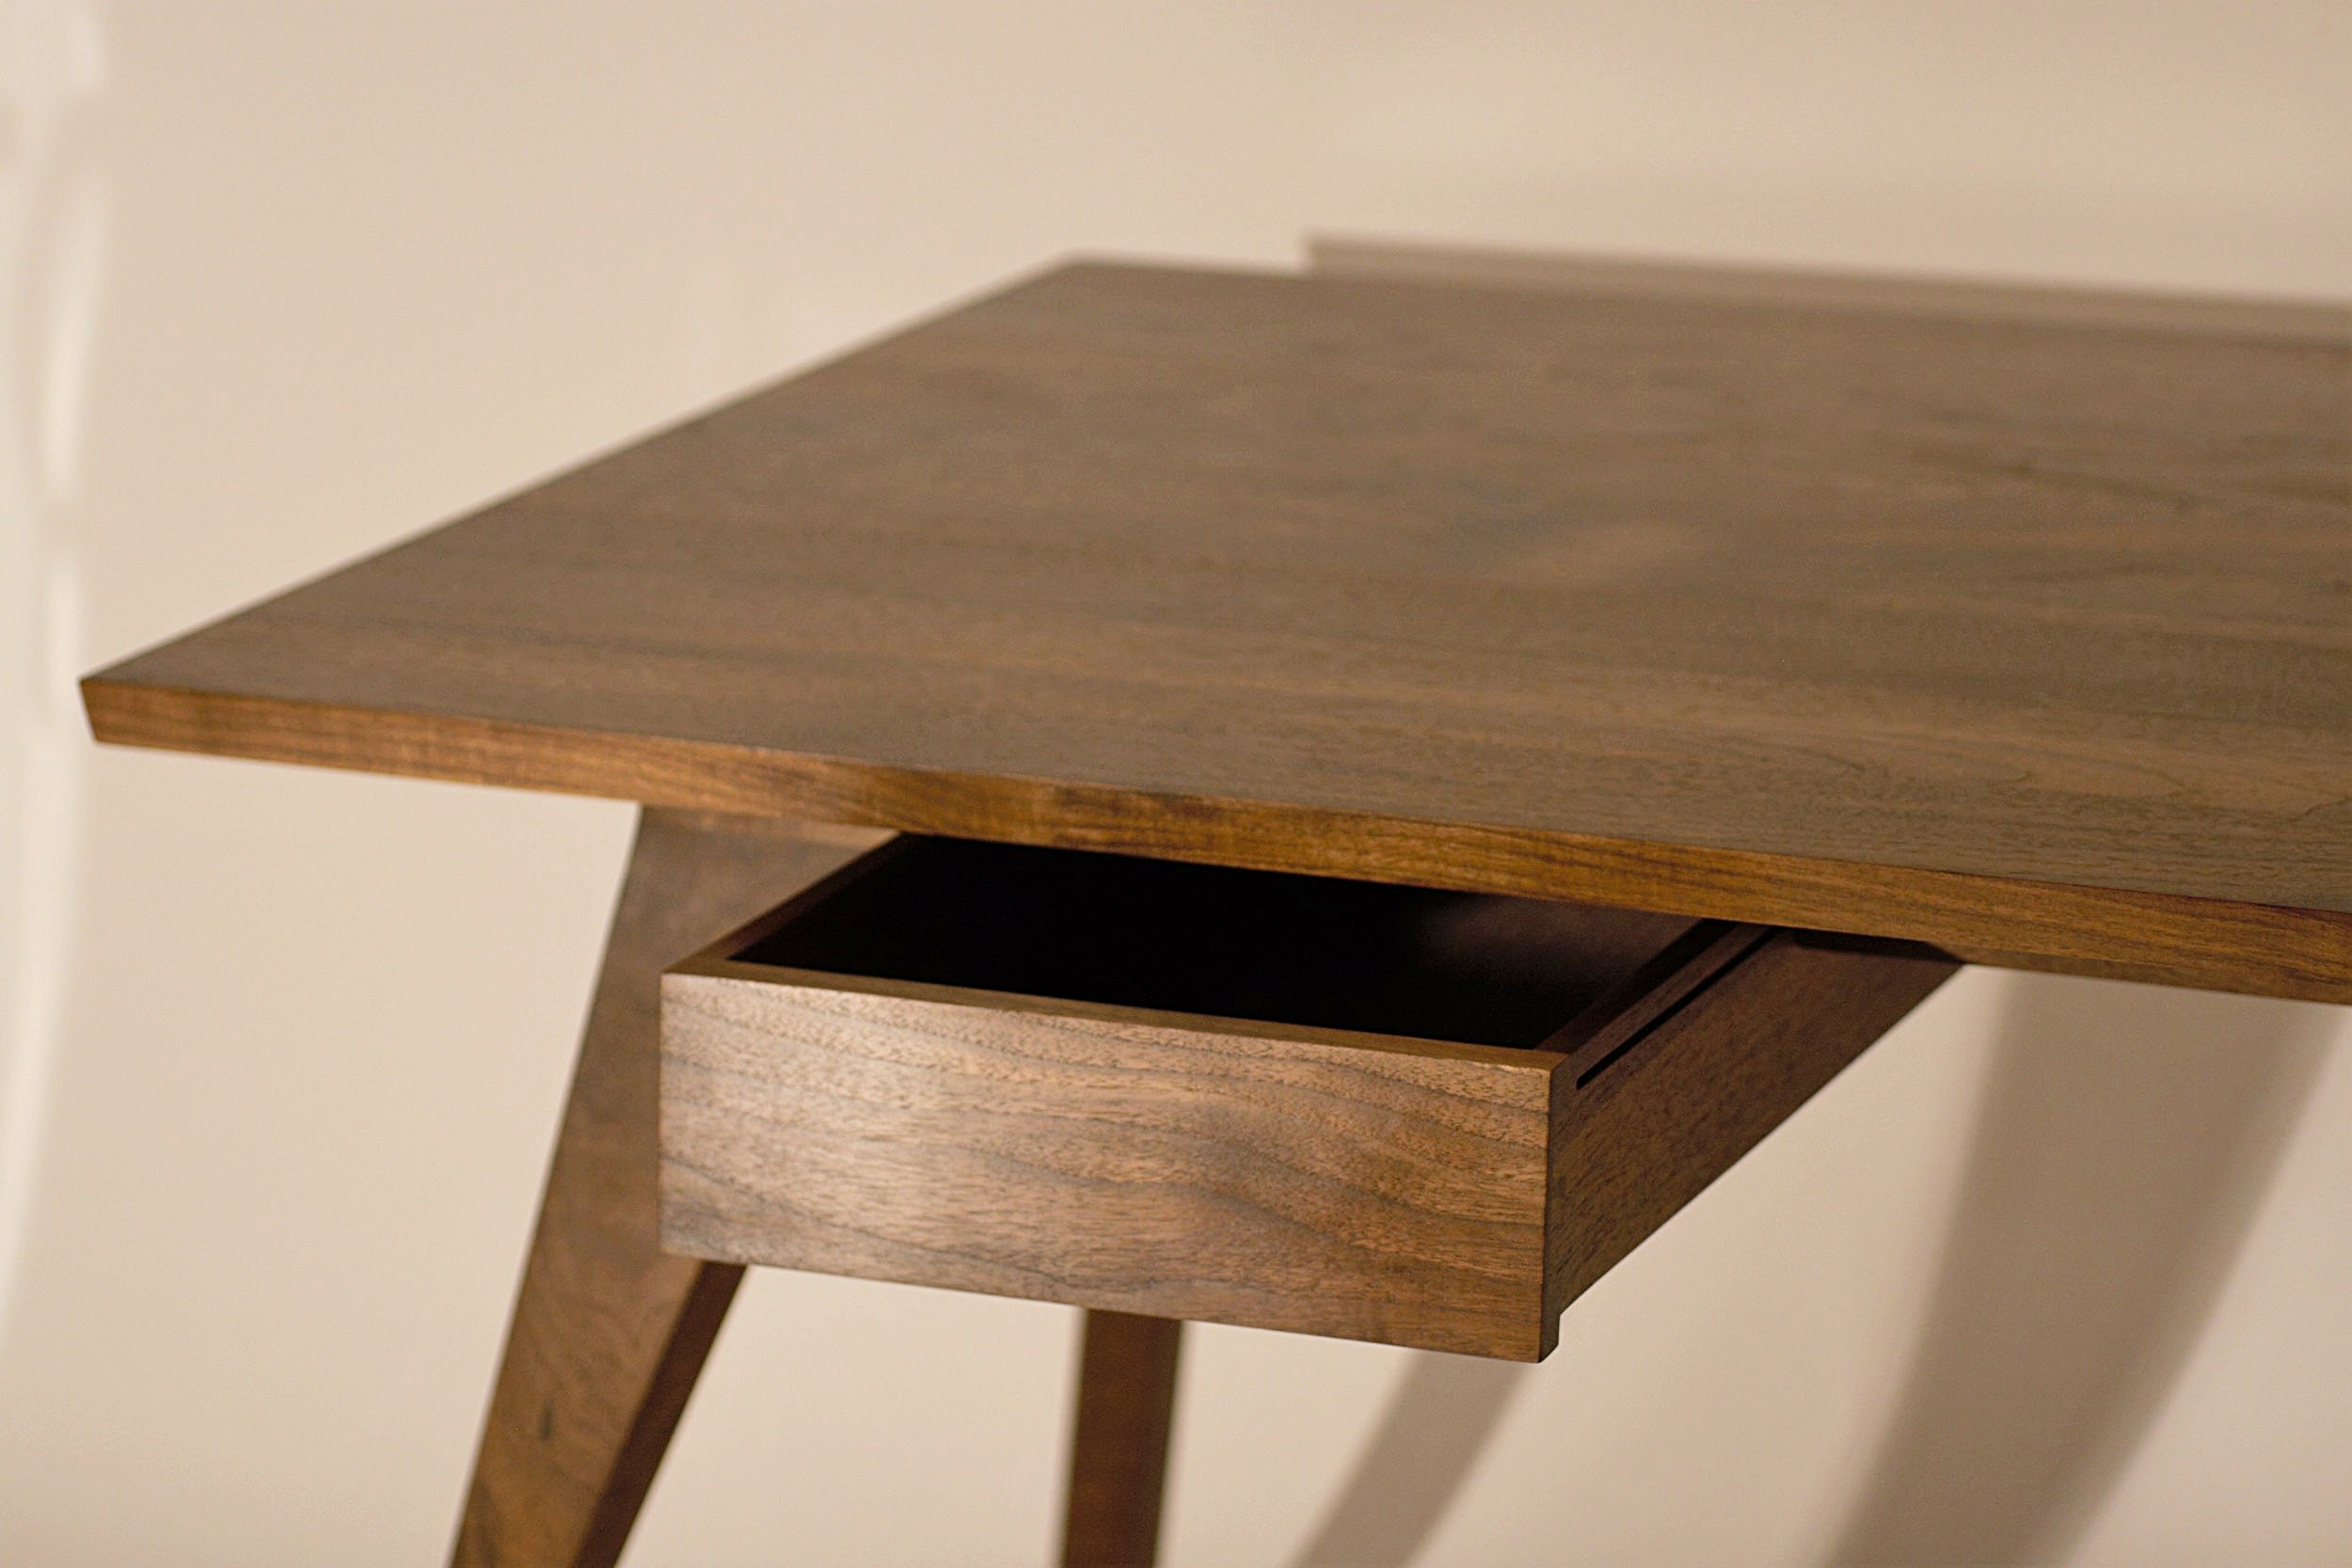 Heliconia_Furniture_Foal_Desk_finished3.jpg